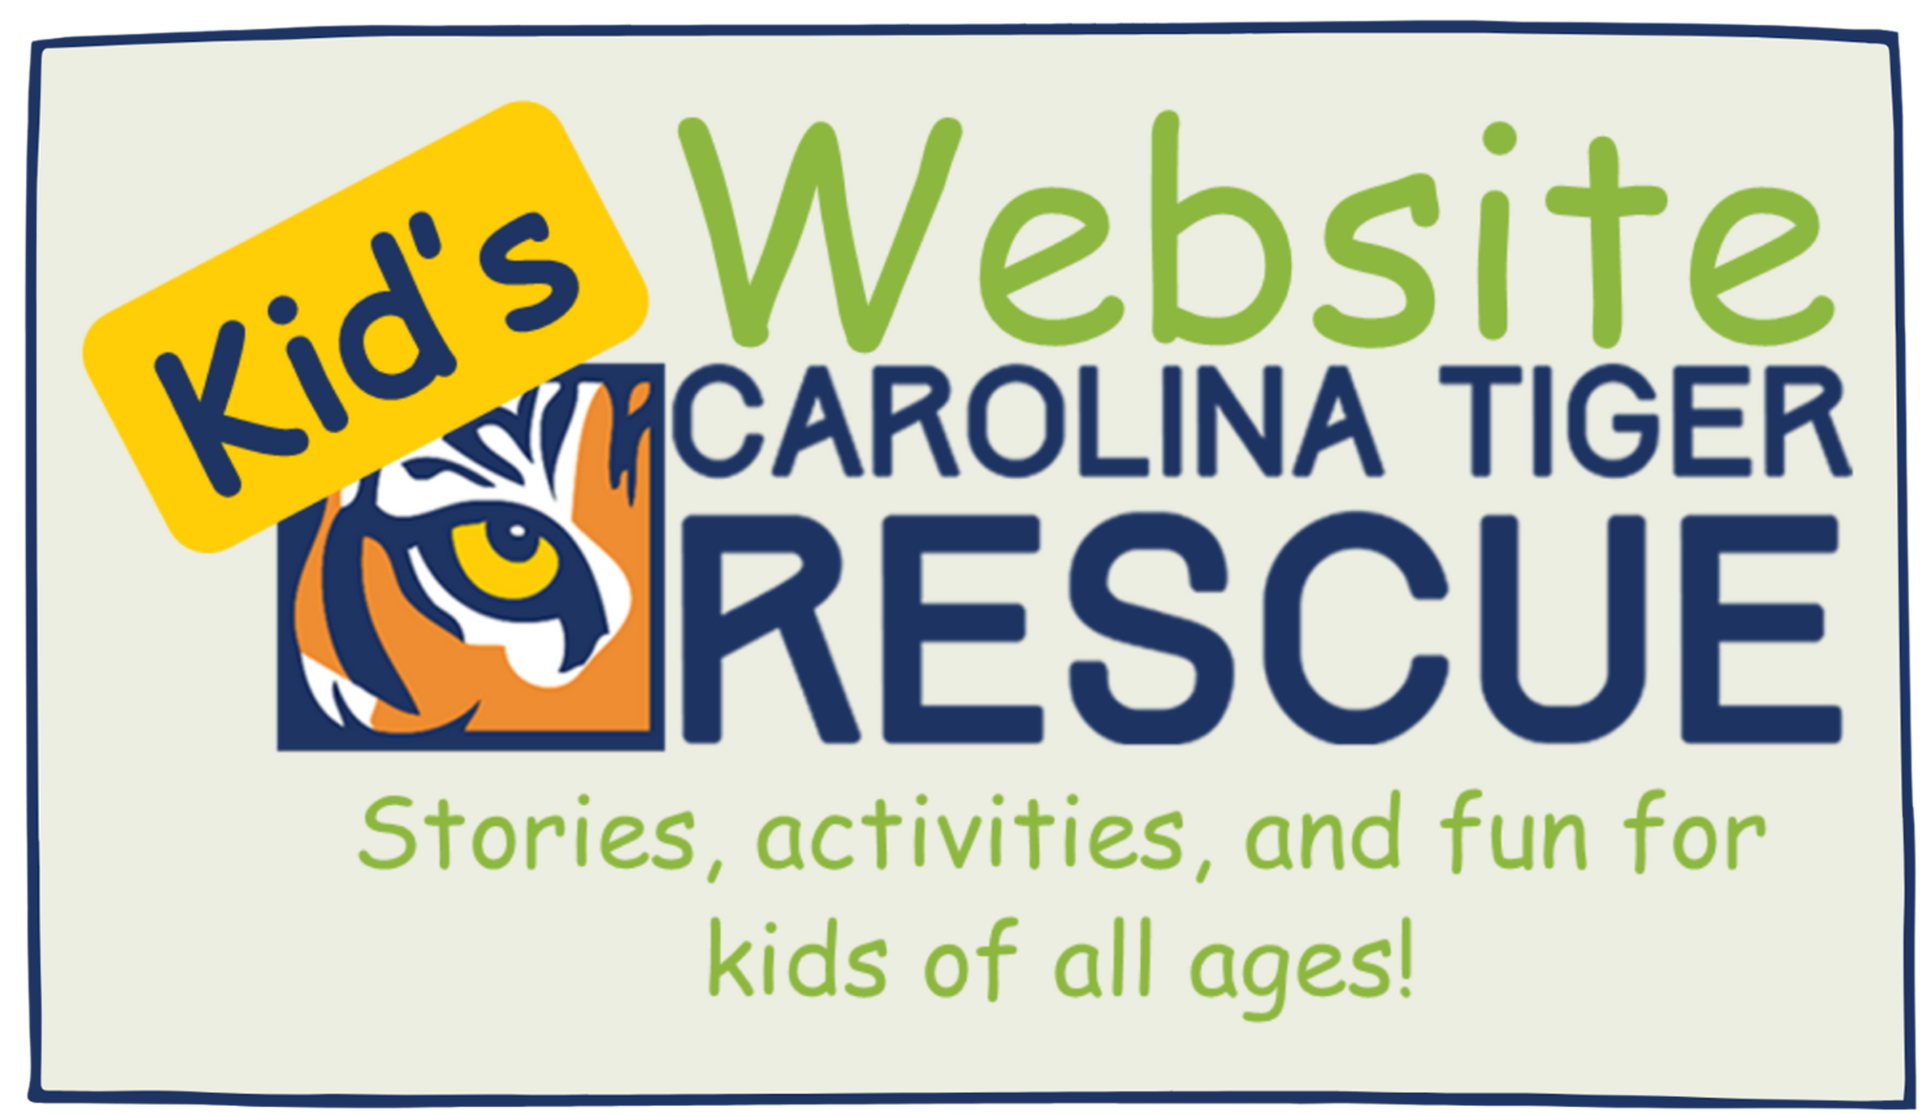 Stories, activities and fun for kids of all ages on our kid friendly website